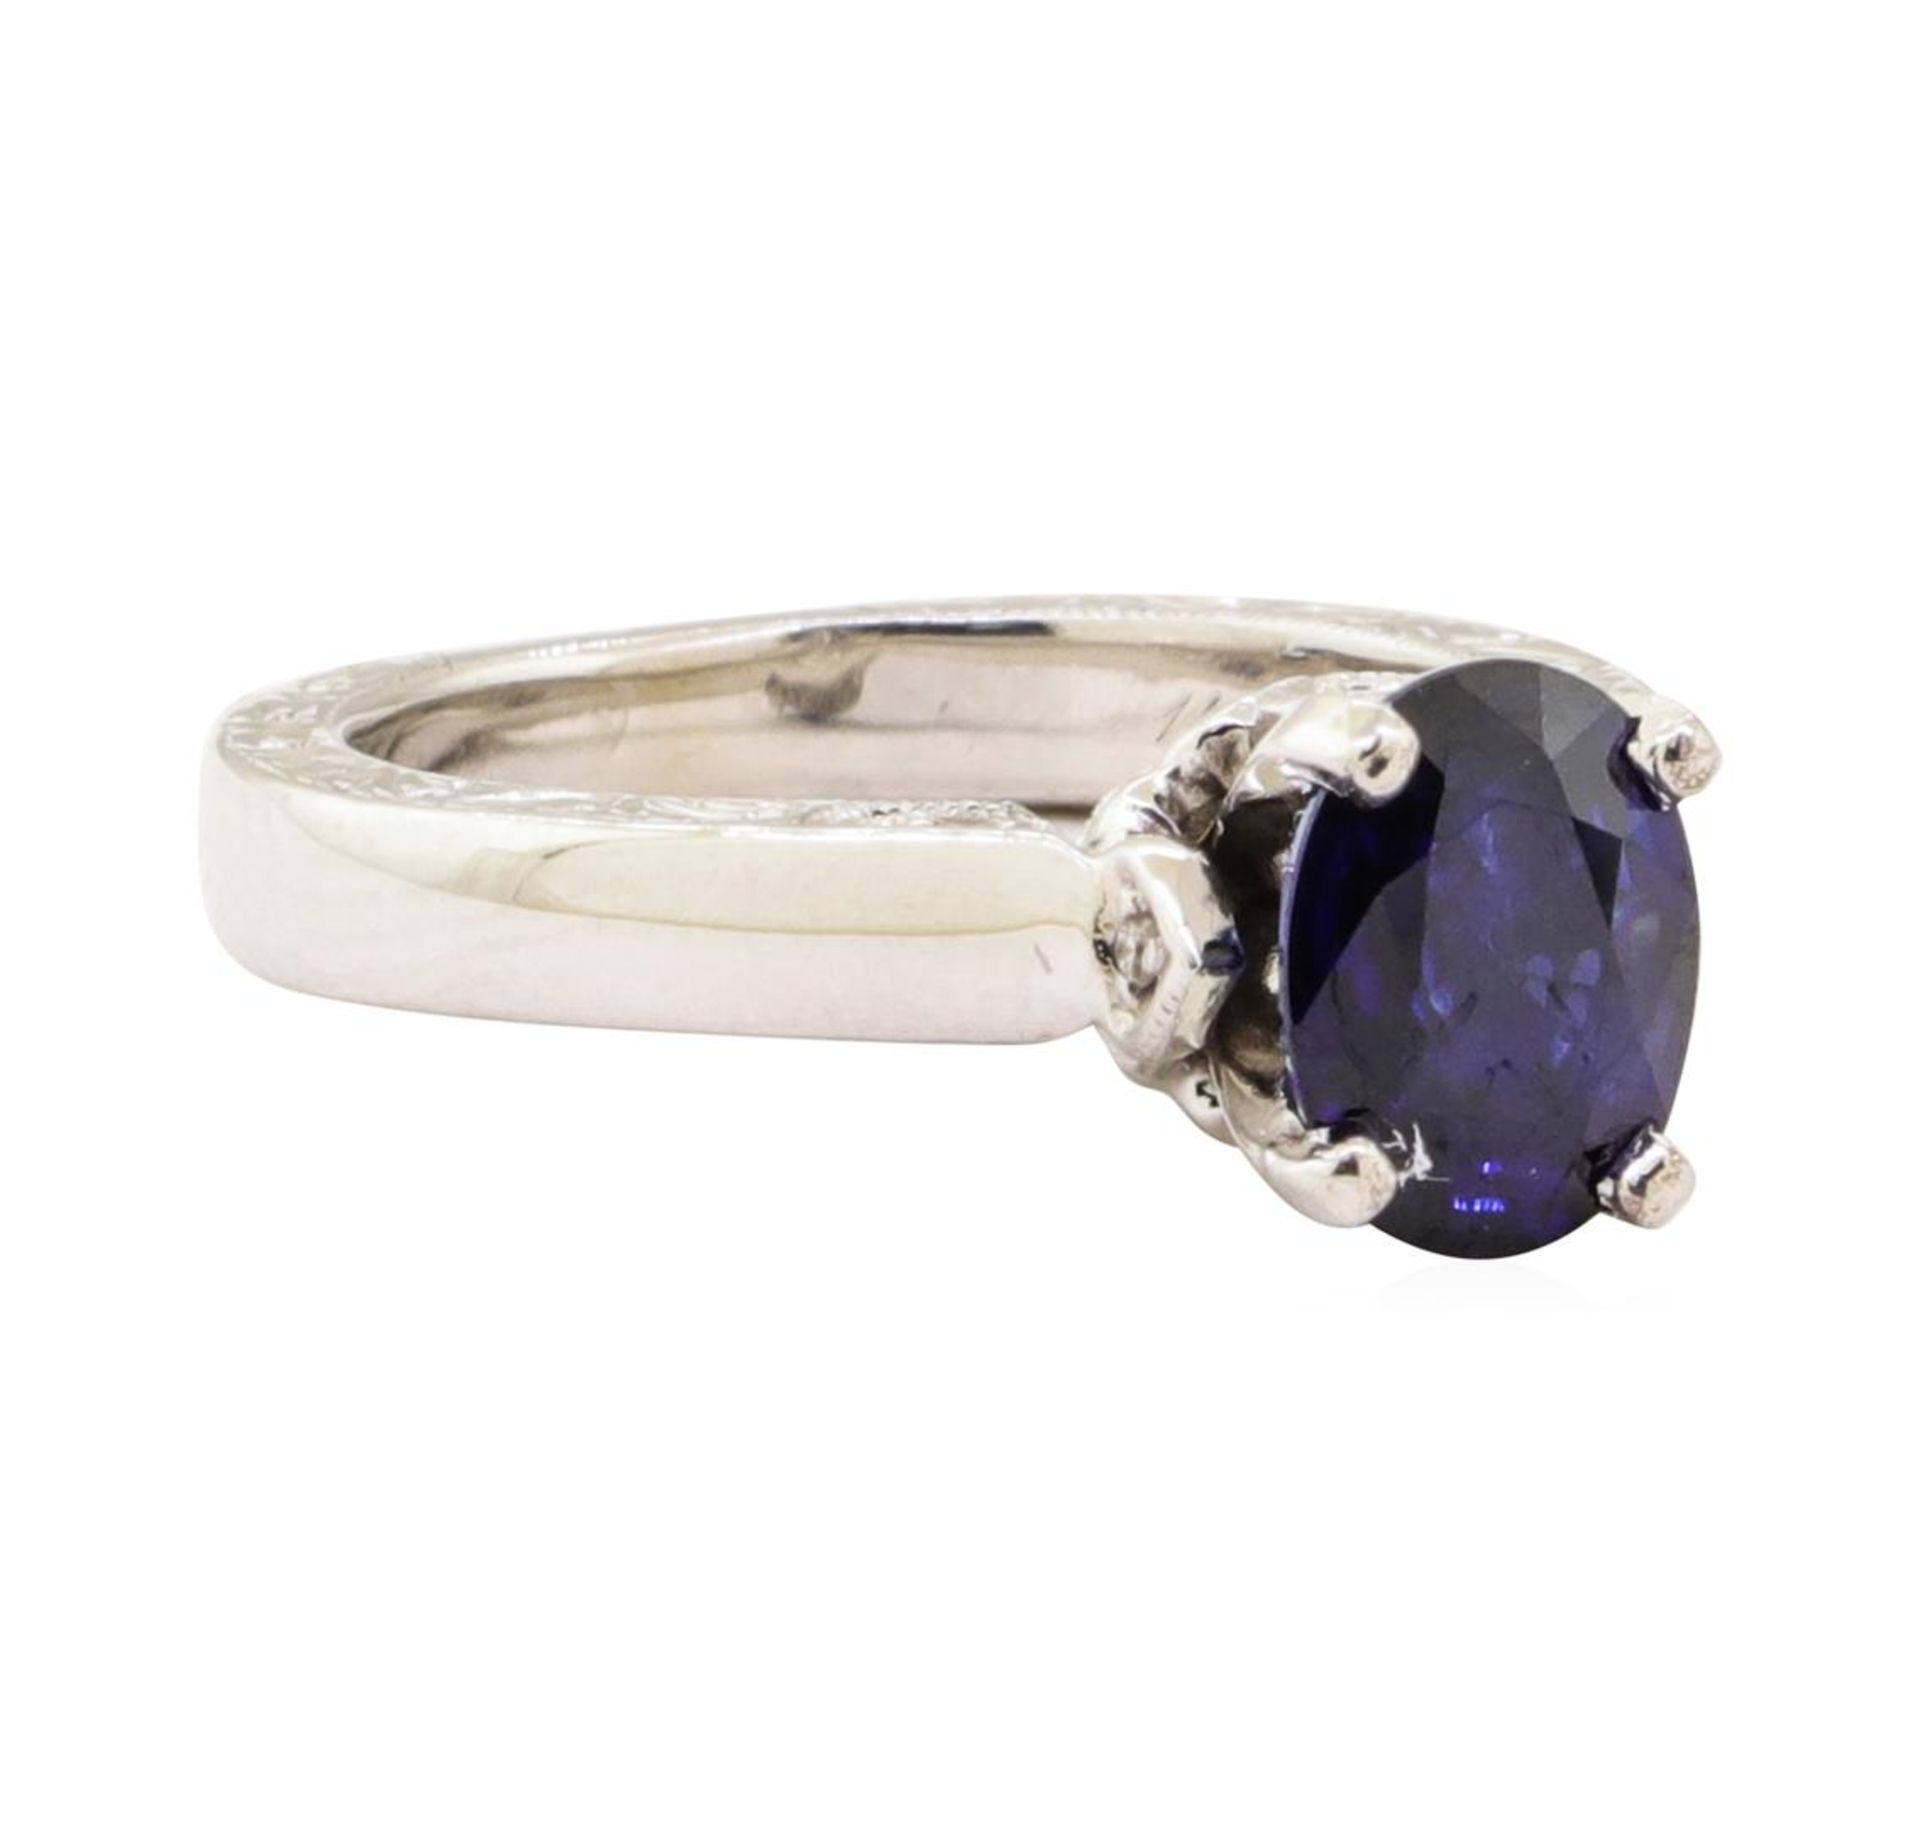 1.66 ctw Blue Sapphire and Diamond Ring - 14KT White Gold